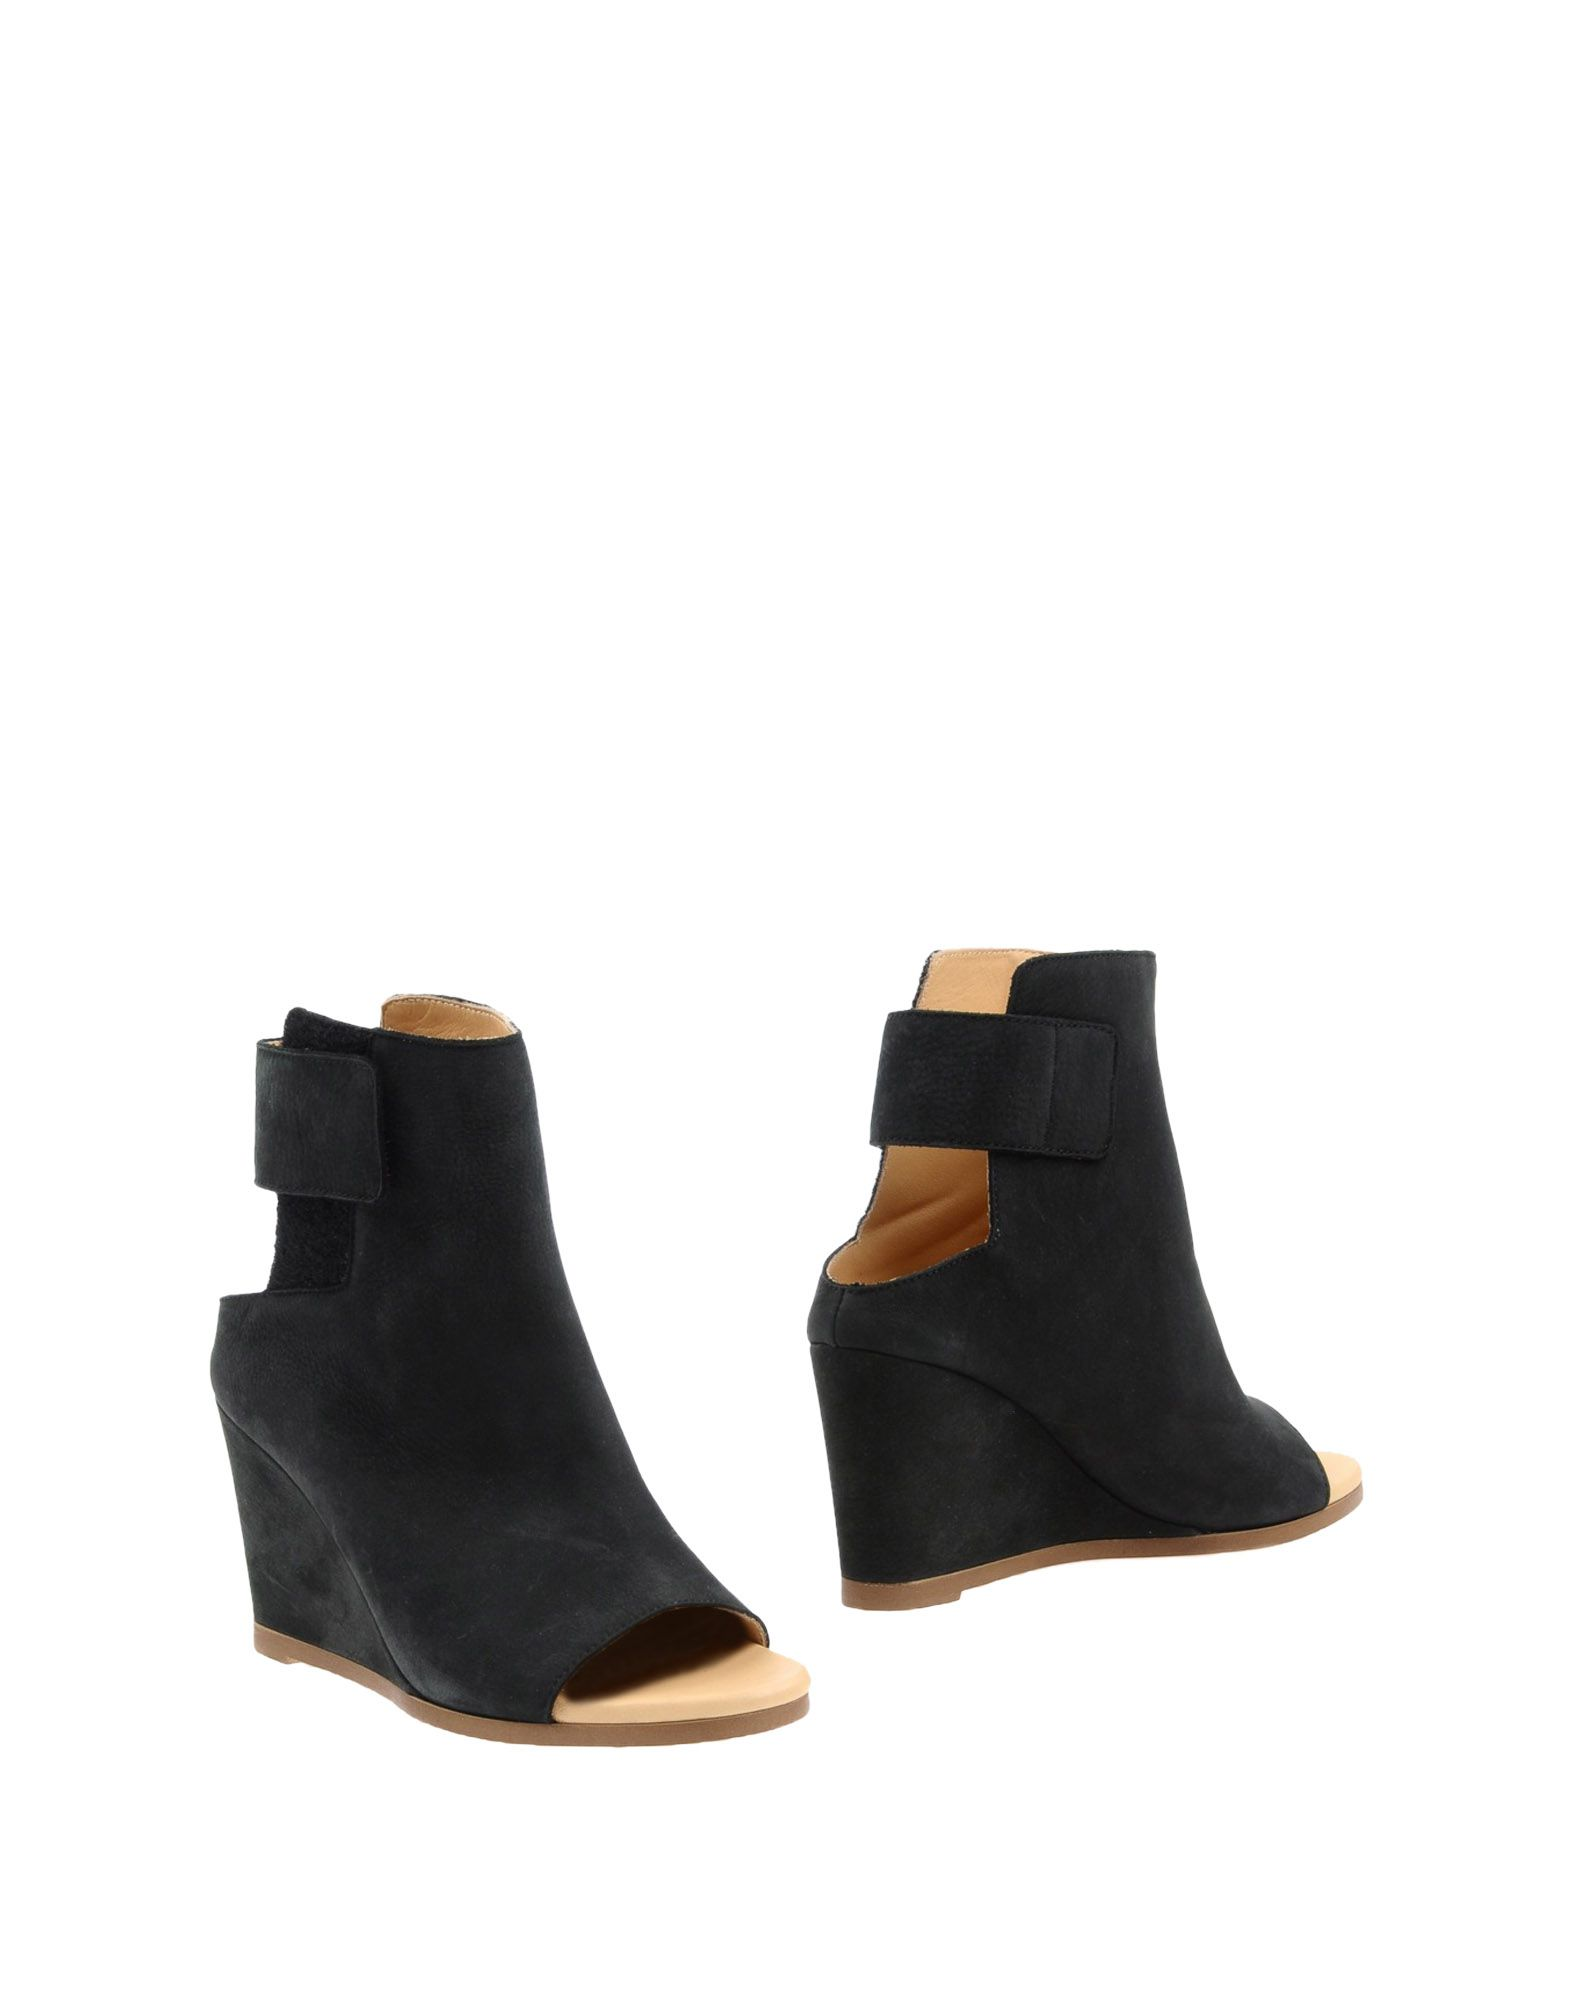 Mm6 Maison Margiela Ankle Boot - Women Mm6 online Maison Margiela Ankle Boots online Mm6 on  Australia - 11301650QL 71ee35